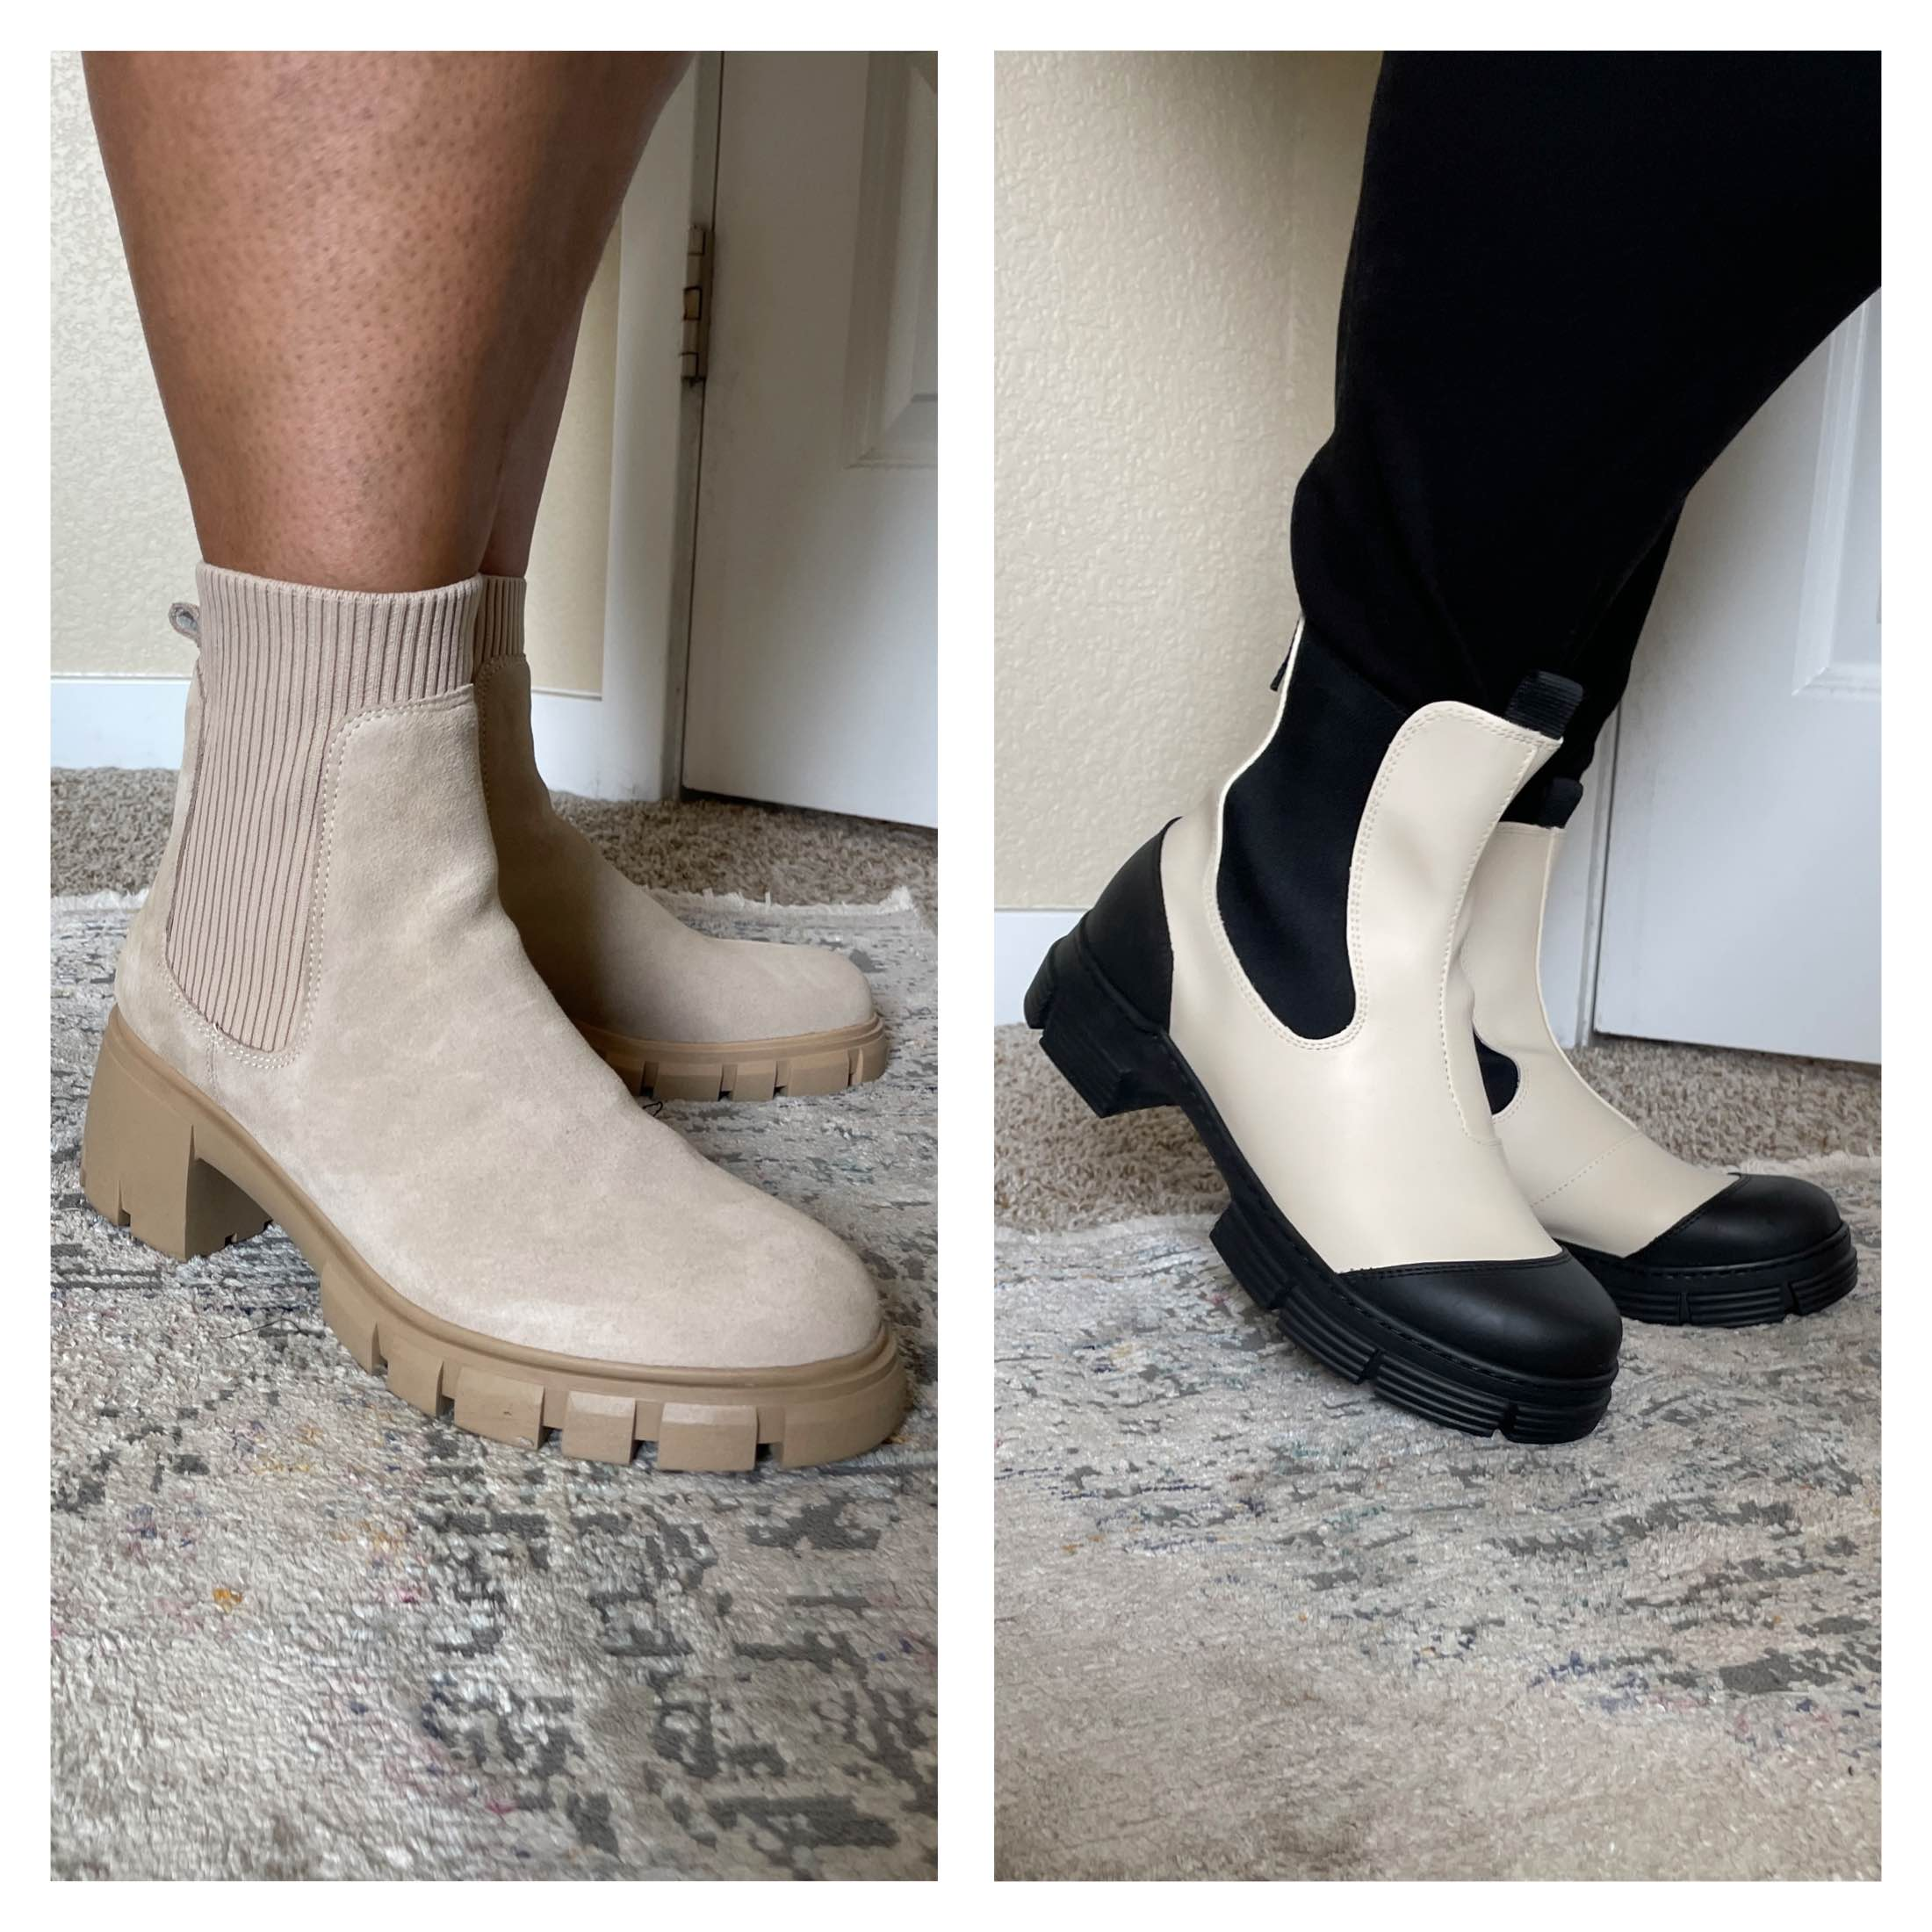 The Steve Madden boots on the left give me Balenciaga-sock-sneakers-meet-Prada-lug-sole-boots vibes.. The other pair of boots on the right are GANNI & made out of recycled materials.